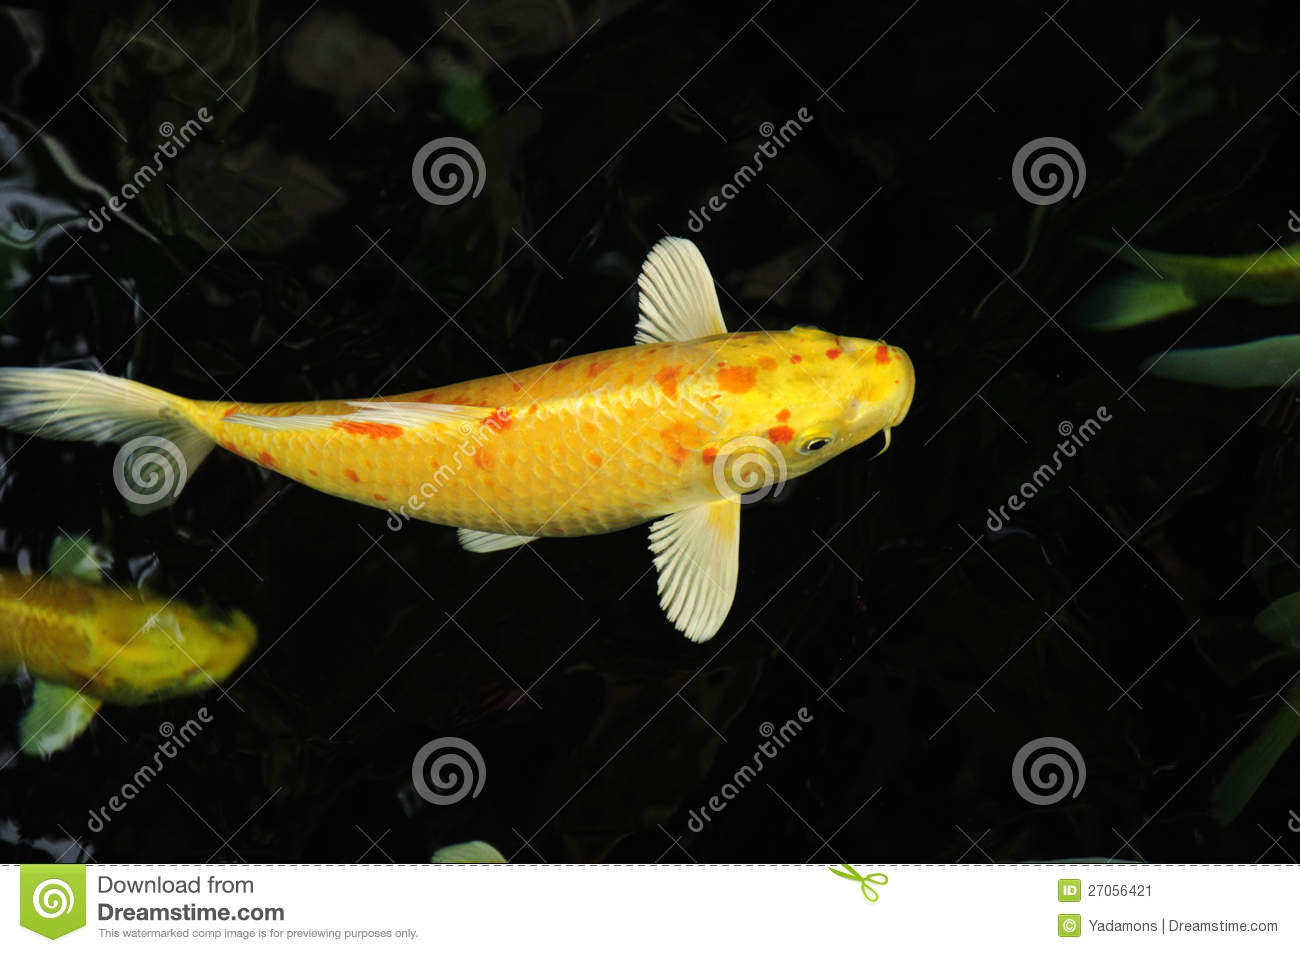 Koi carp fish stock image image 27056421 for Japanese koi carp fish